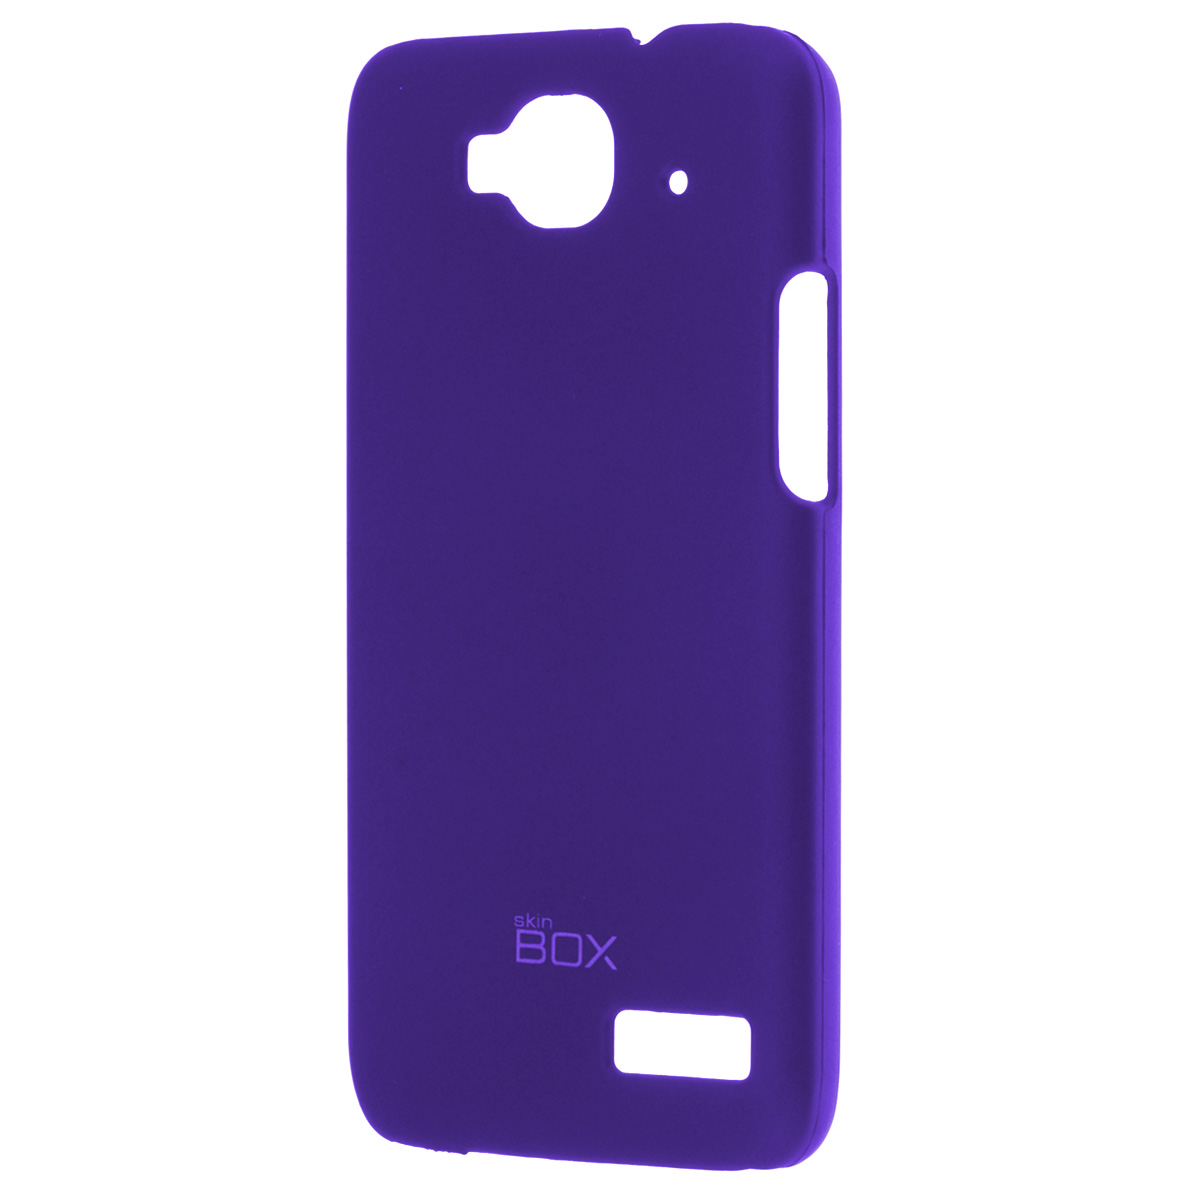 все цены на  Skinbox Shield 4People чехол для Alcatel 6012D Idol Mini, Blue  онлайн